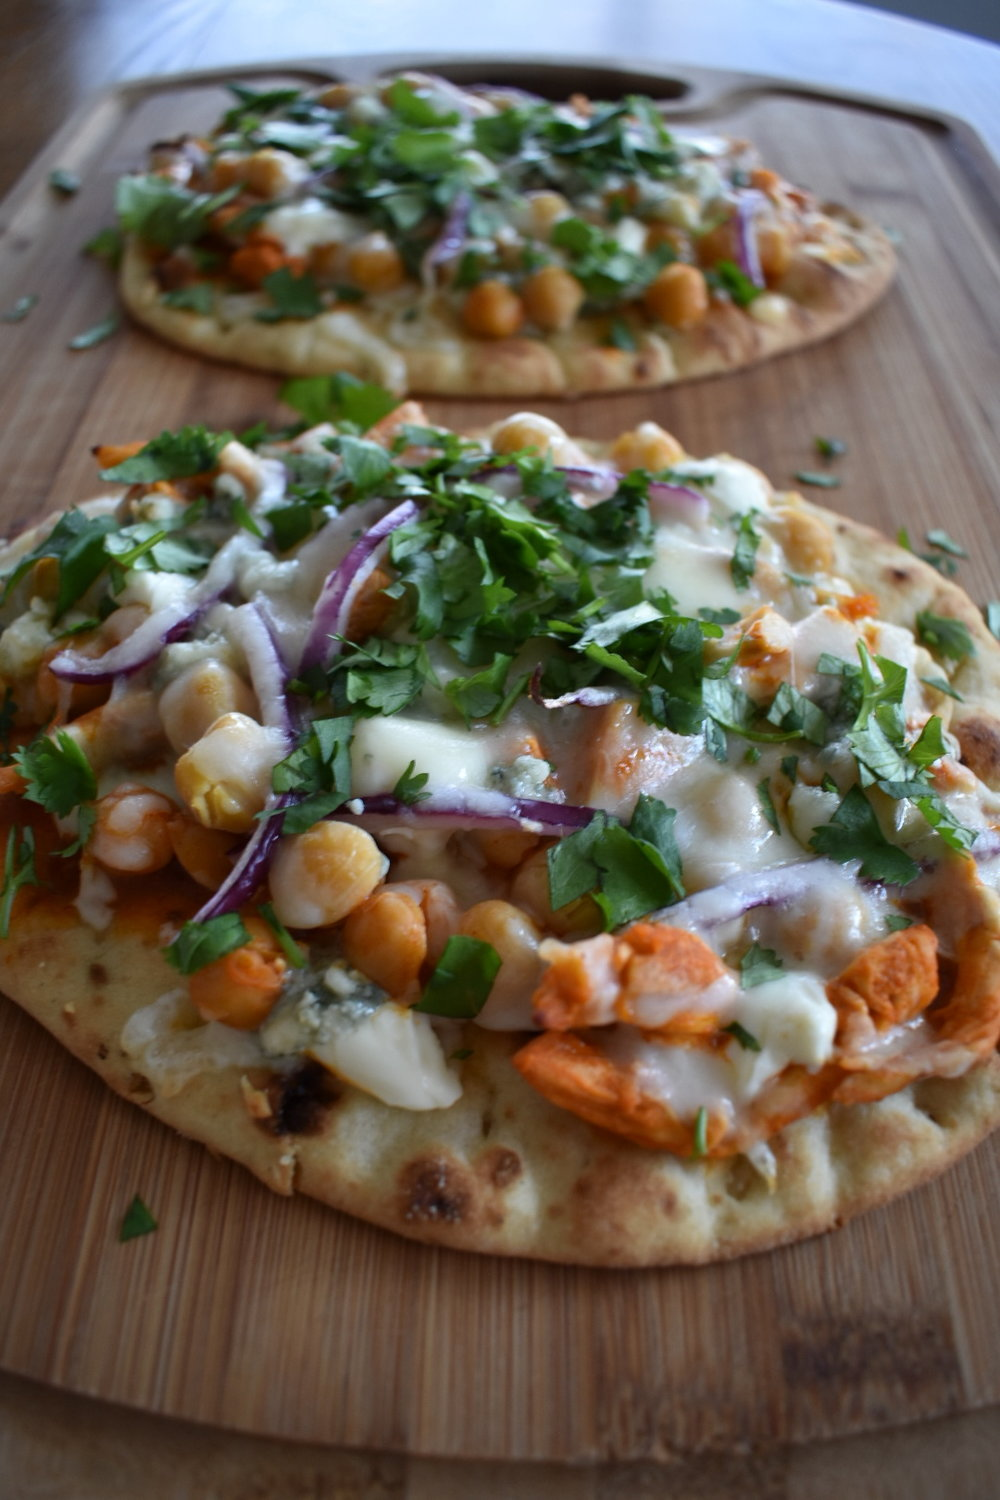 buffalo chicken naan pizza with chickpeas